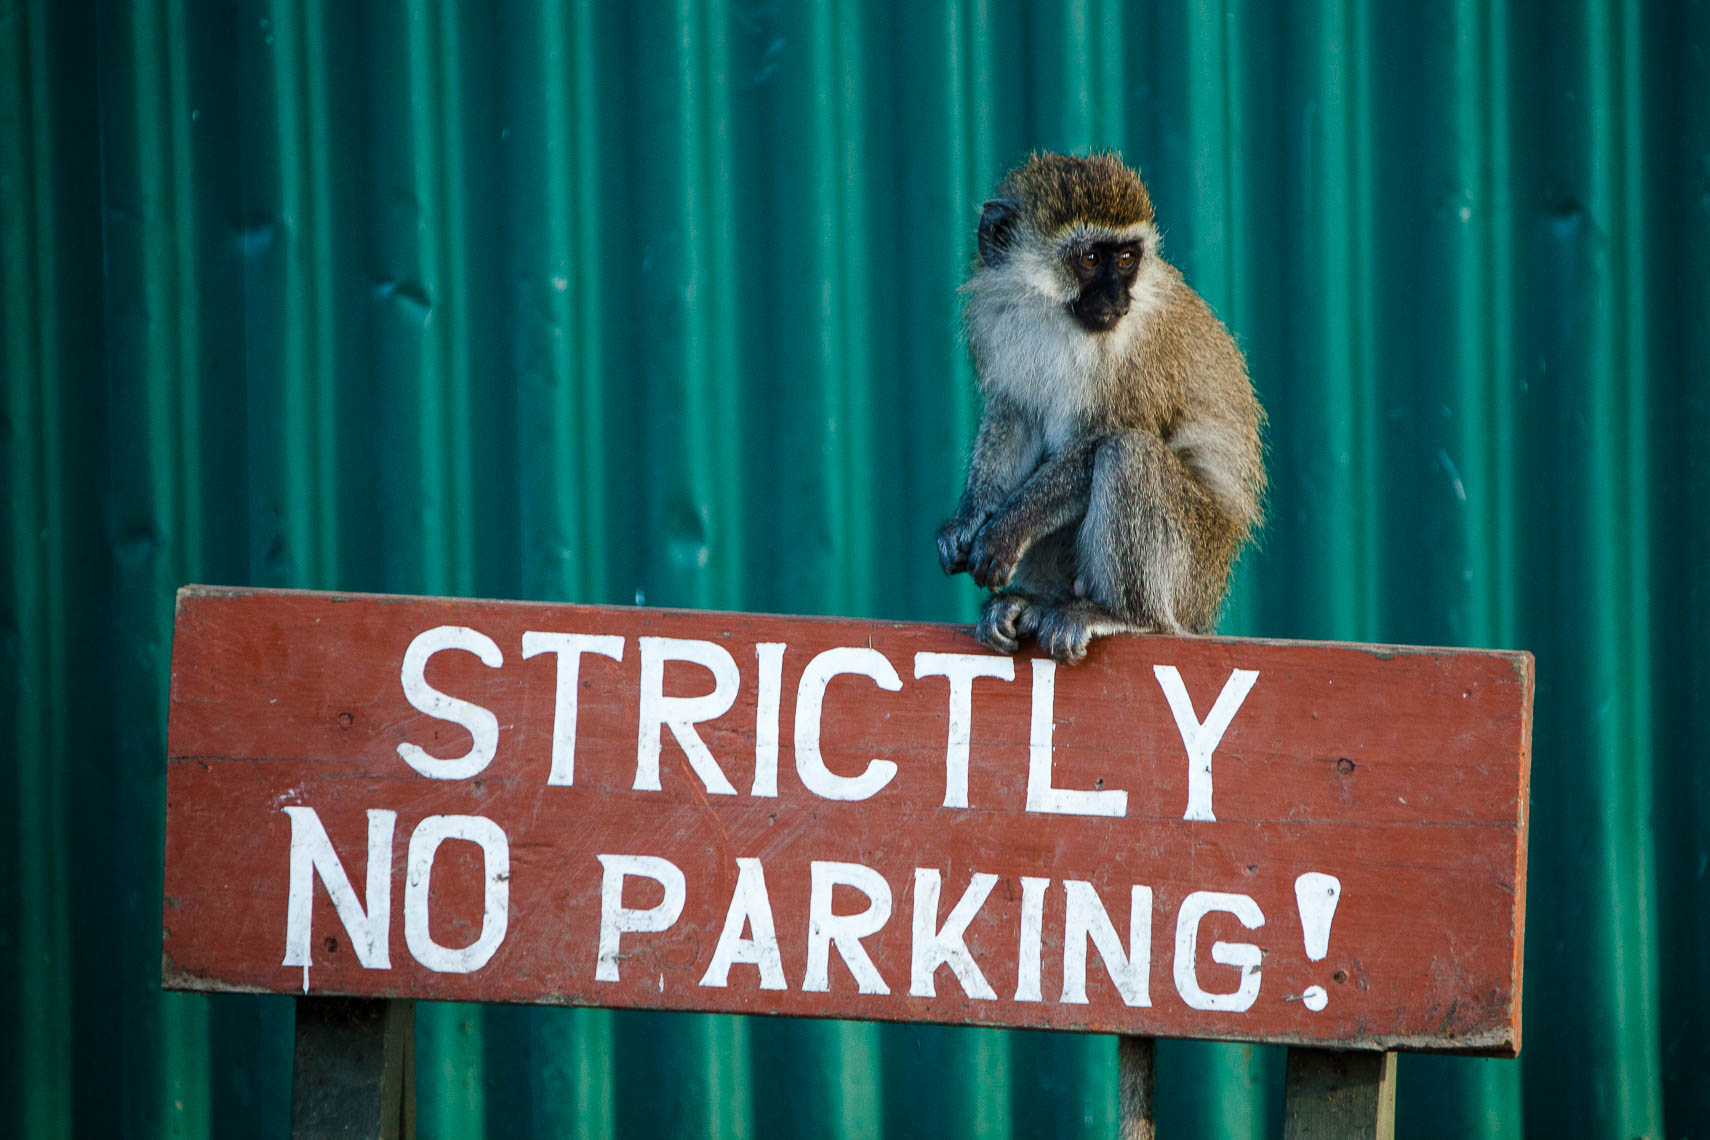 Strictly NO parking!